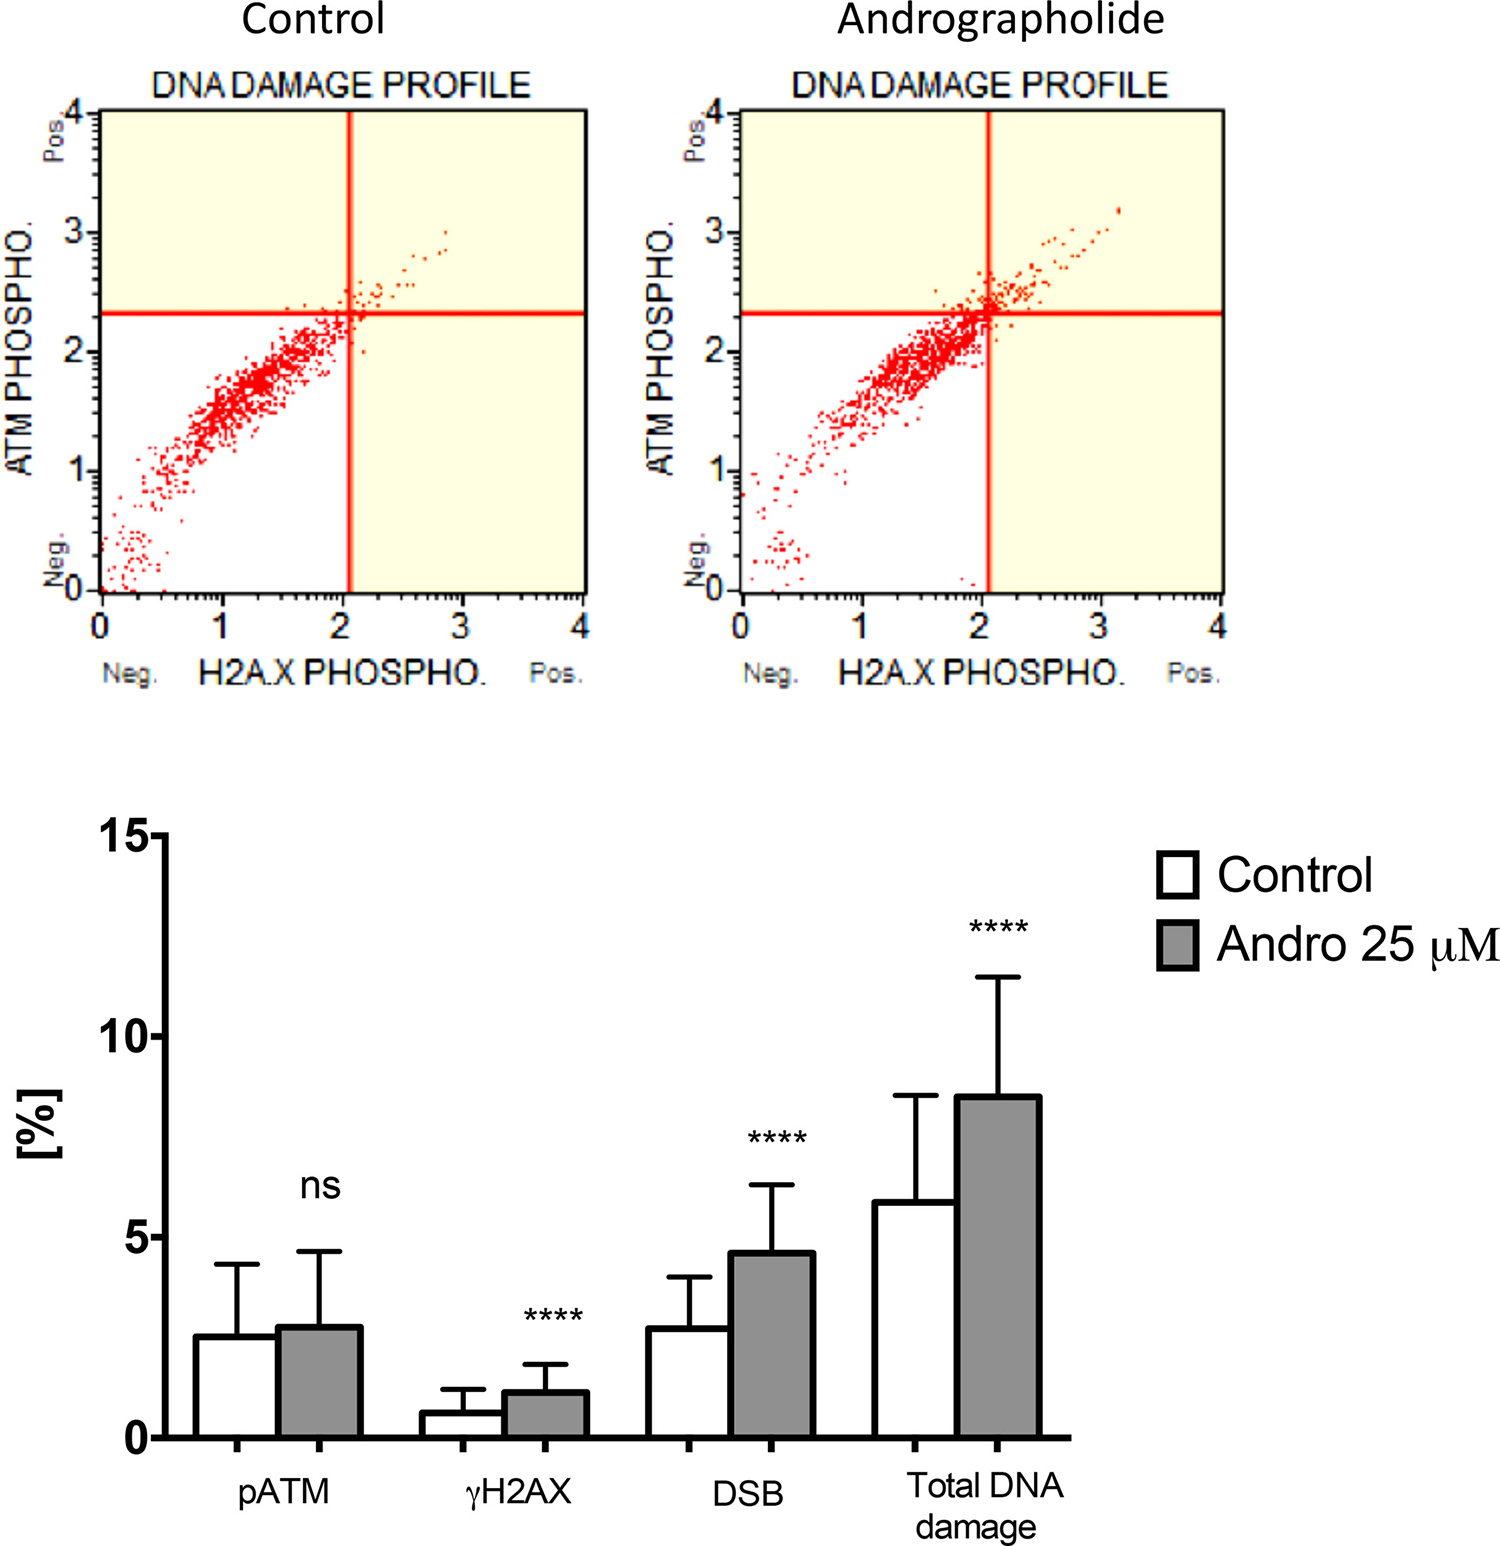 Andrographolide increases DNA damage in PC3 cells.